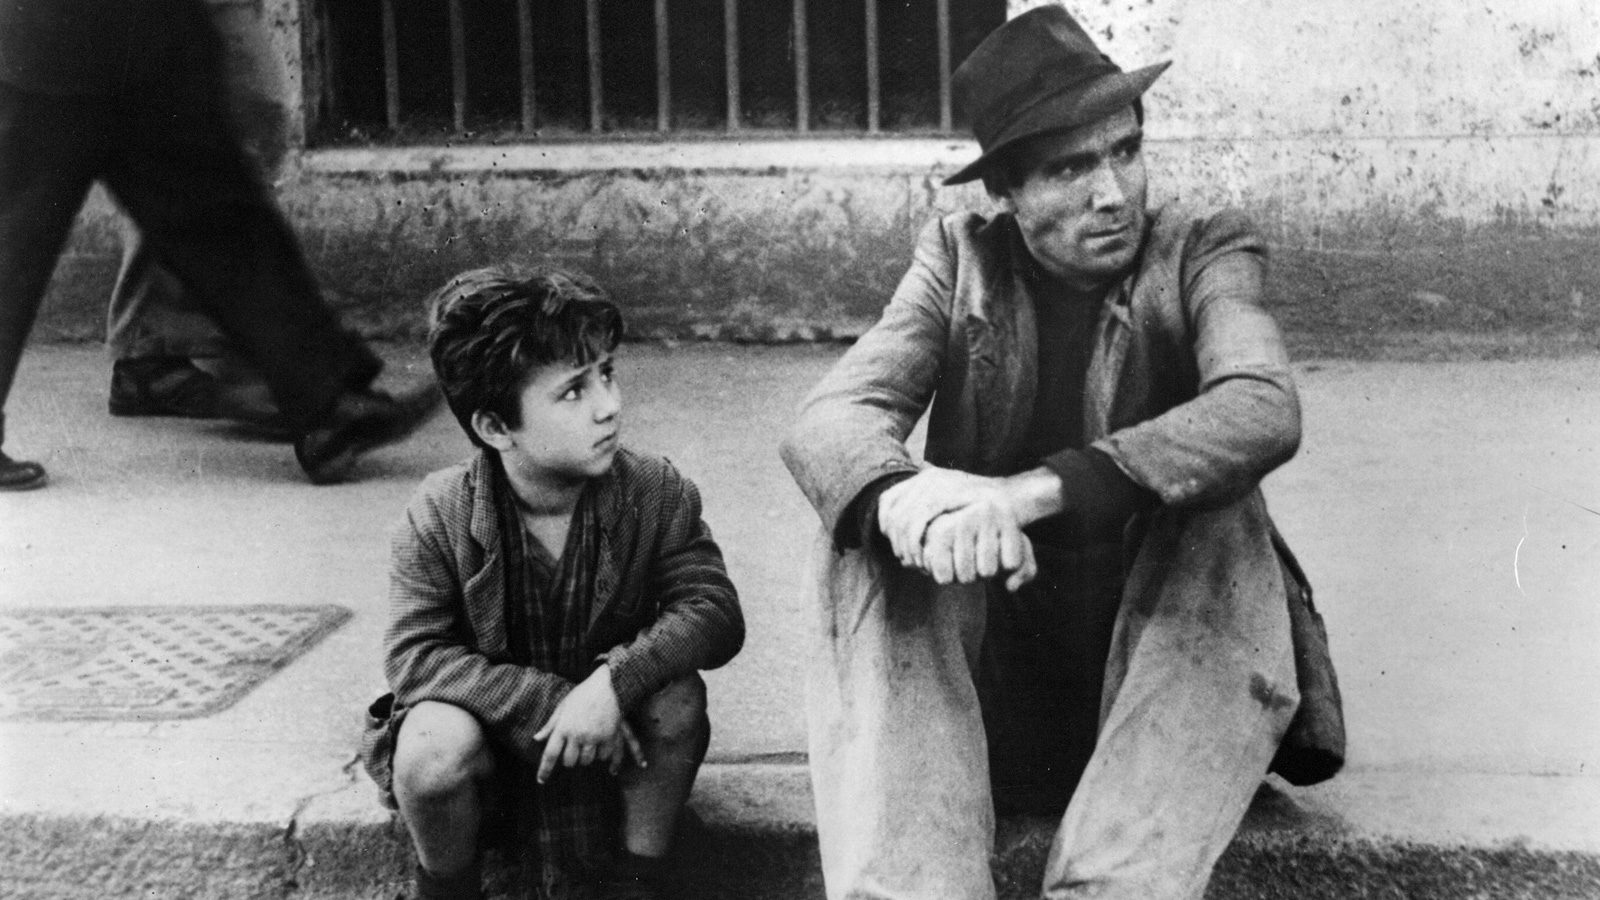 Bicycle-Thieves-1600x900-c-default.jpg